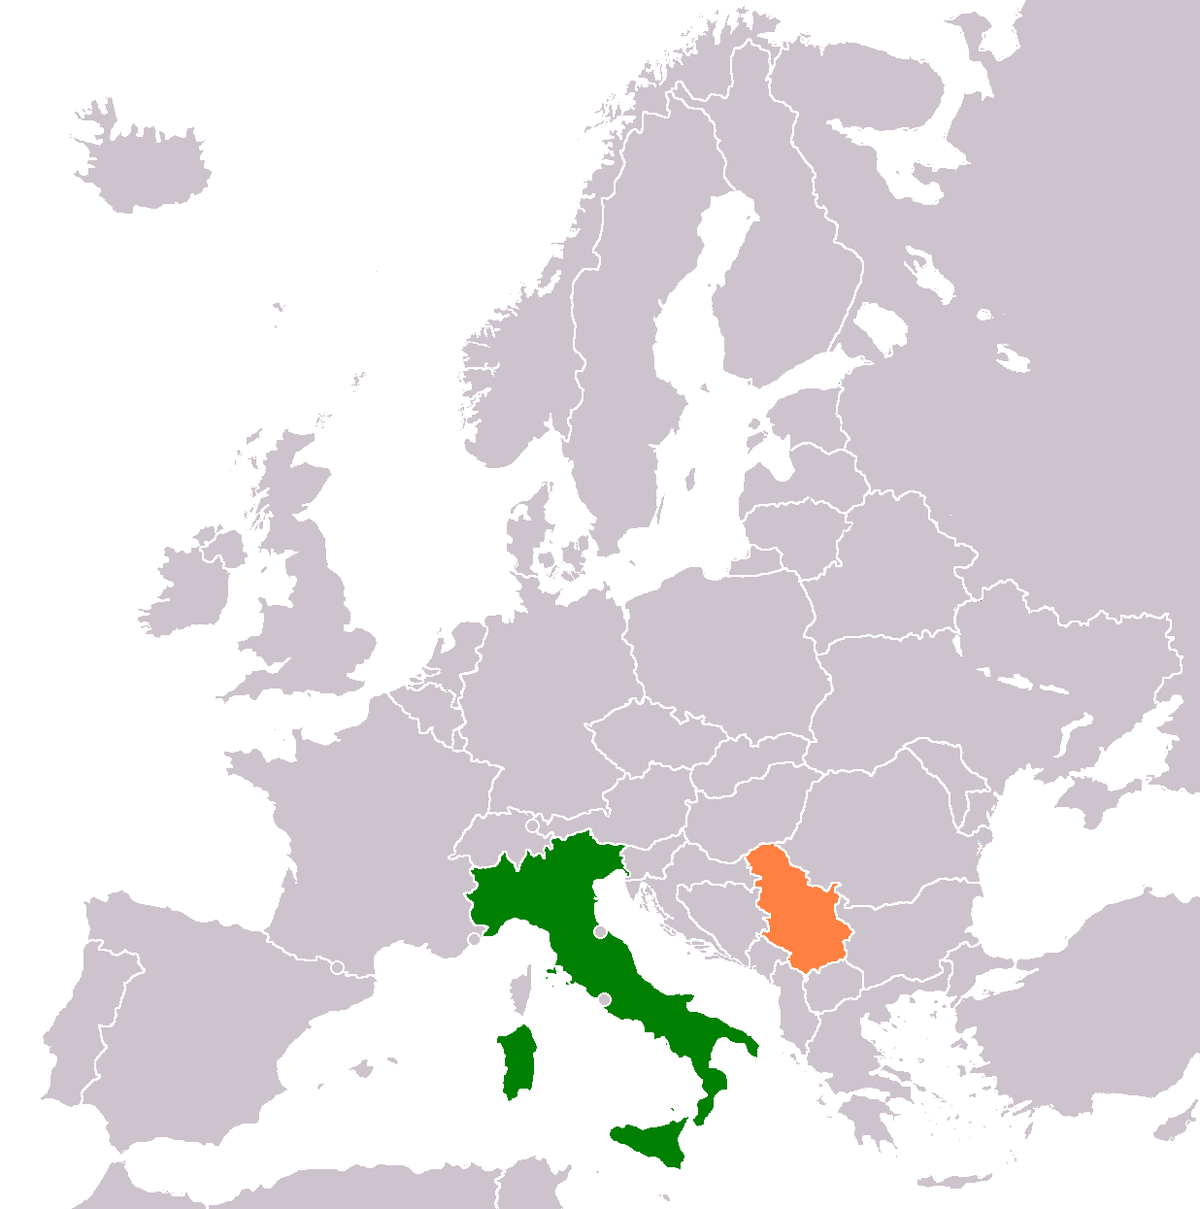 Italyserbia relations wikipedia gumiabroncs Choice Image